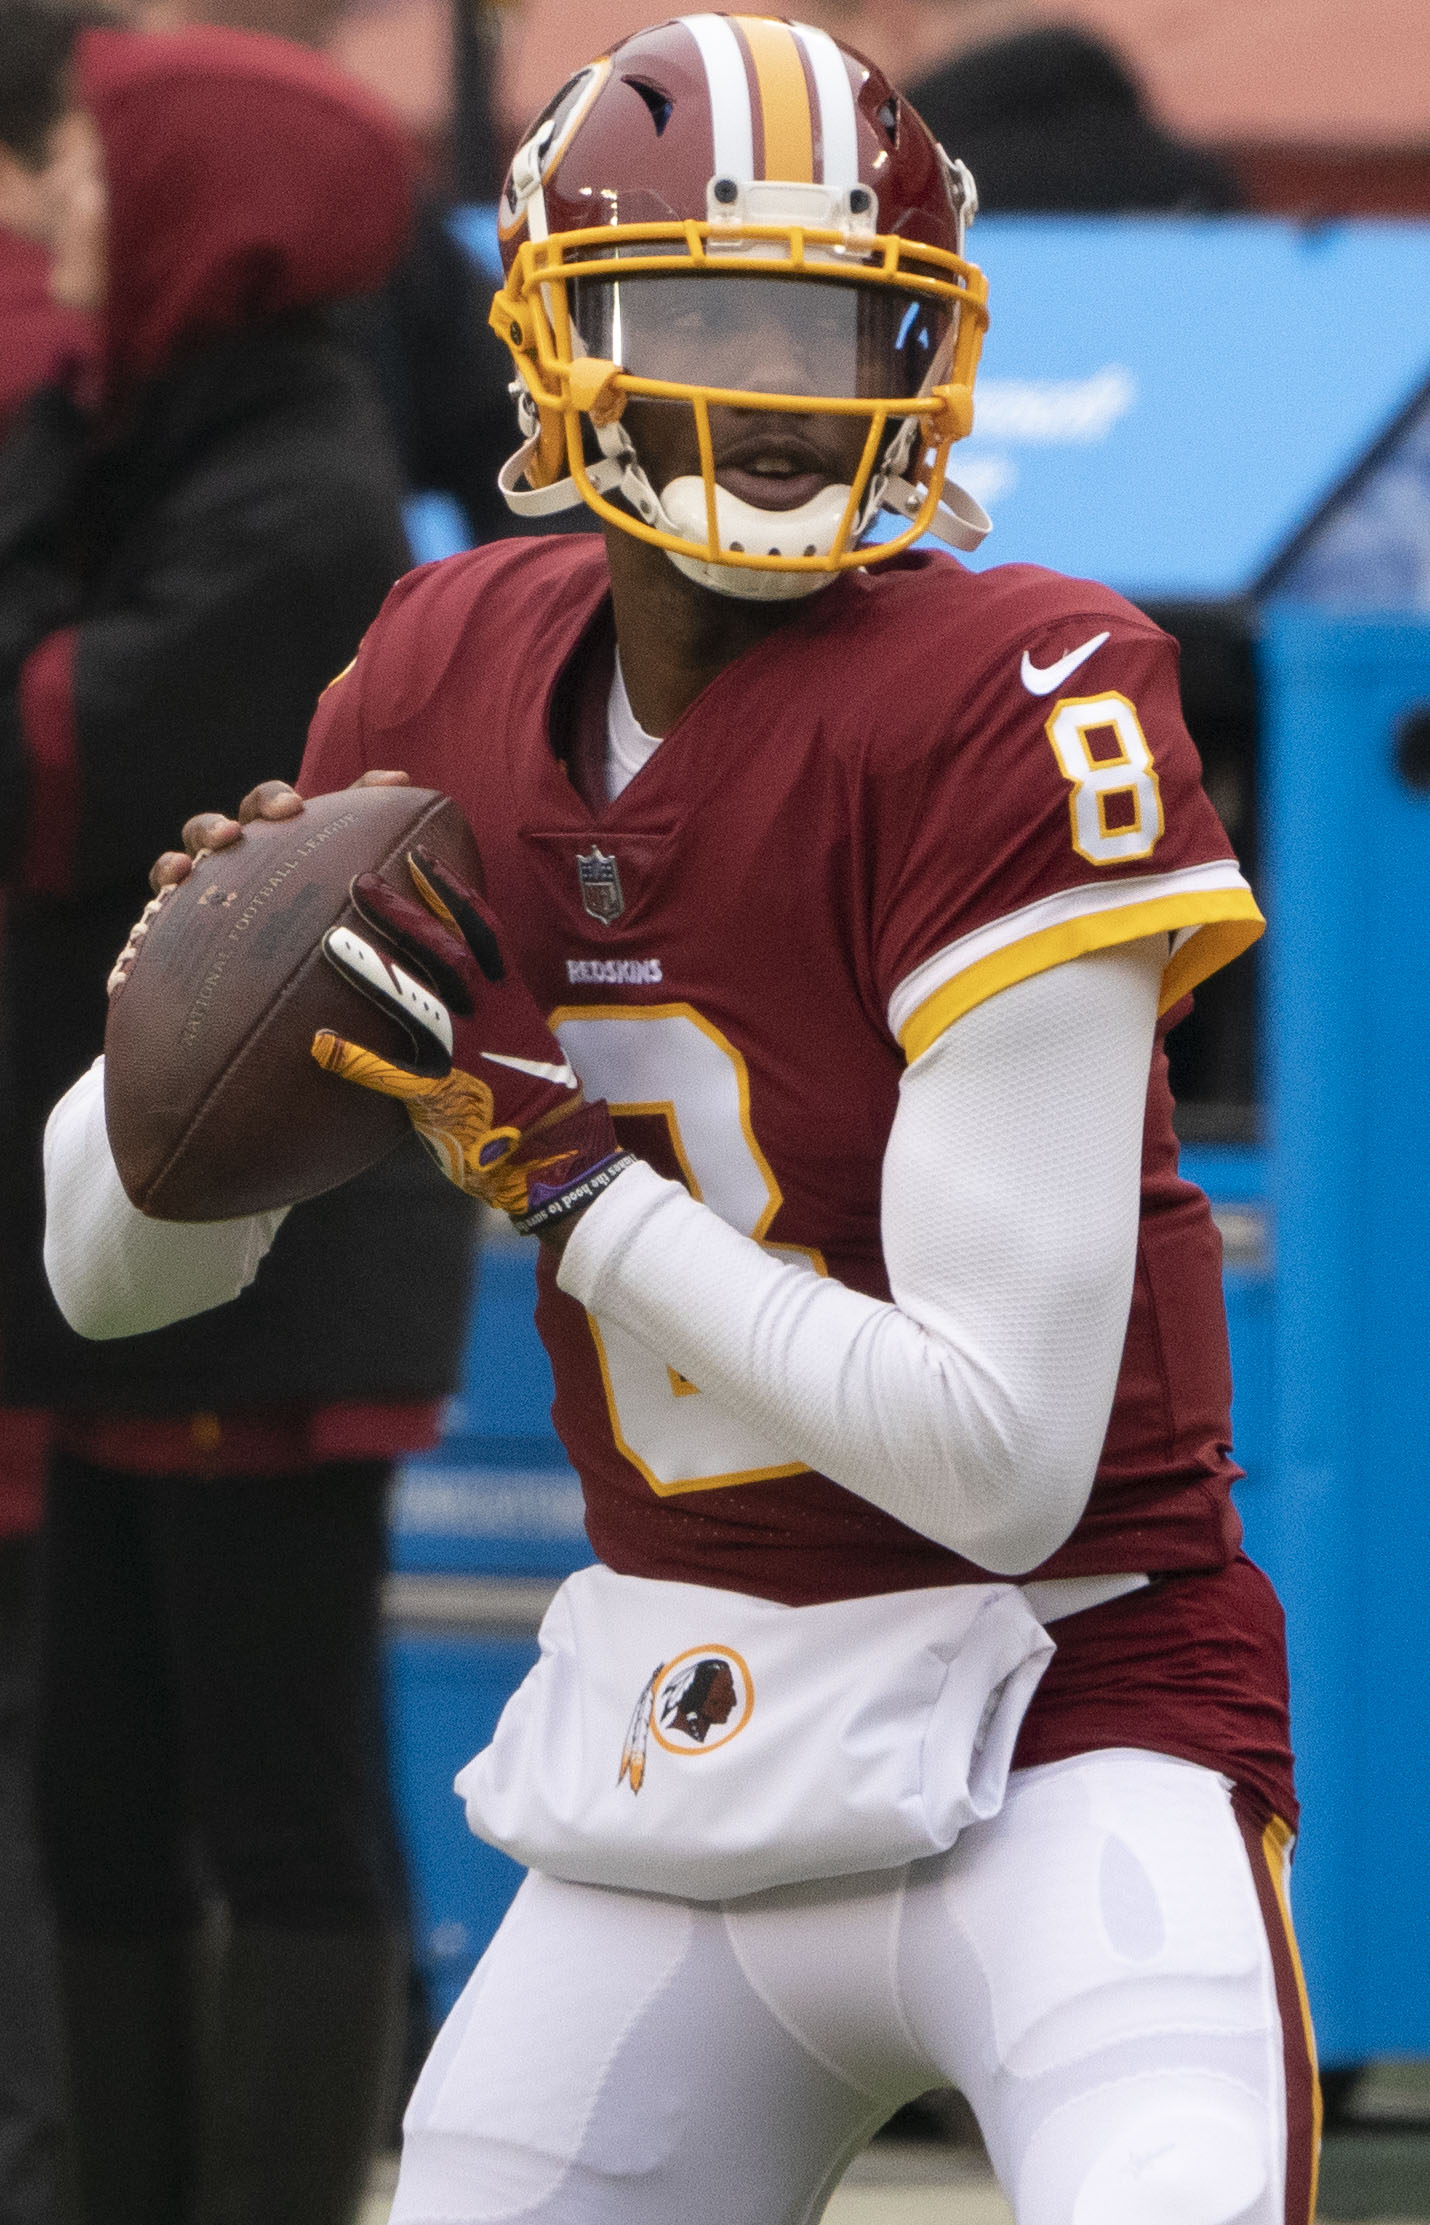 f103f12a Josh Johnson (quarterback) - Wikipedia